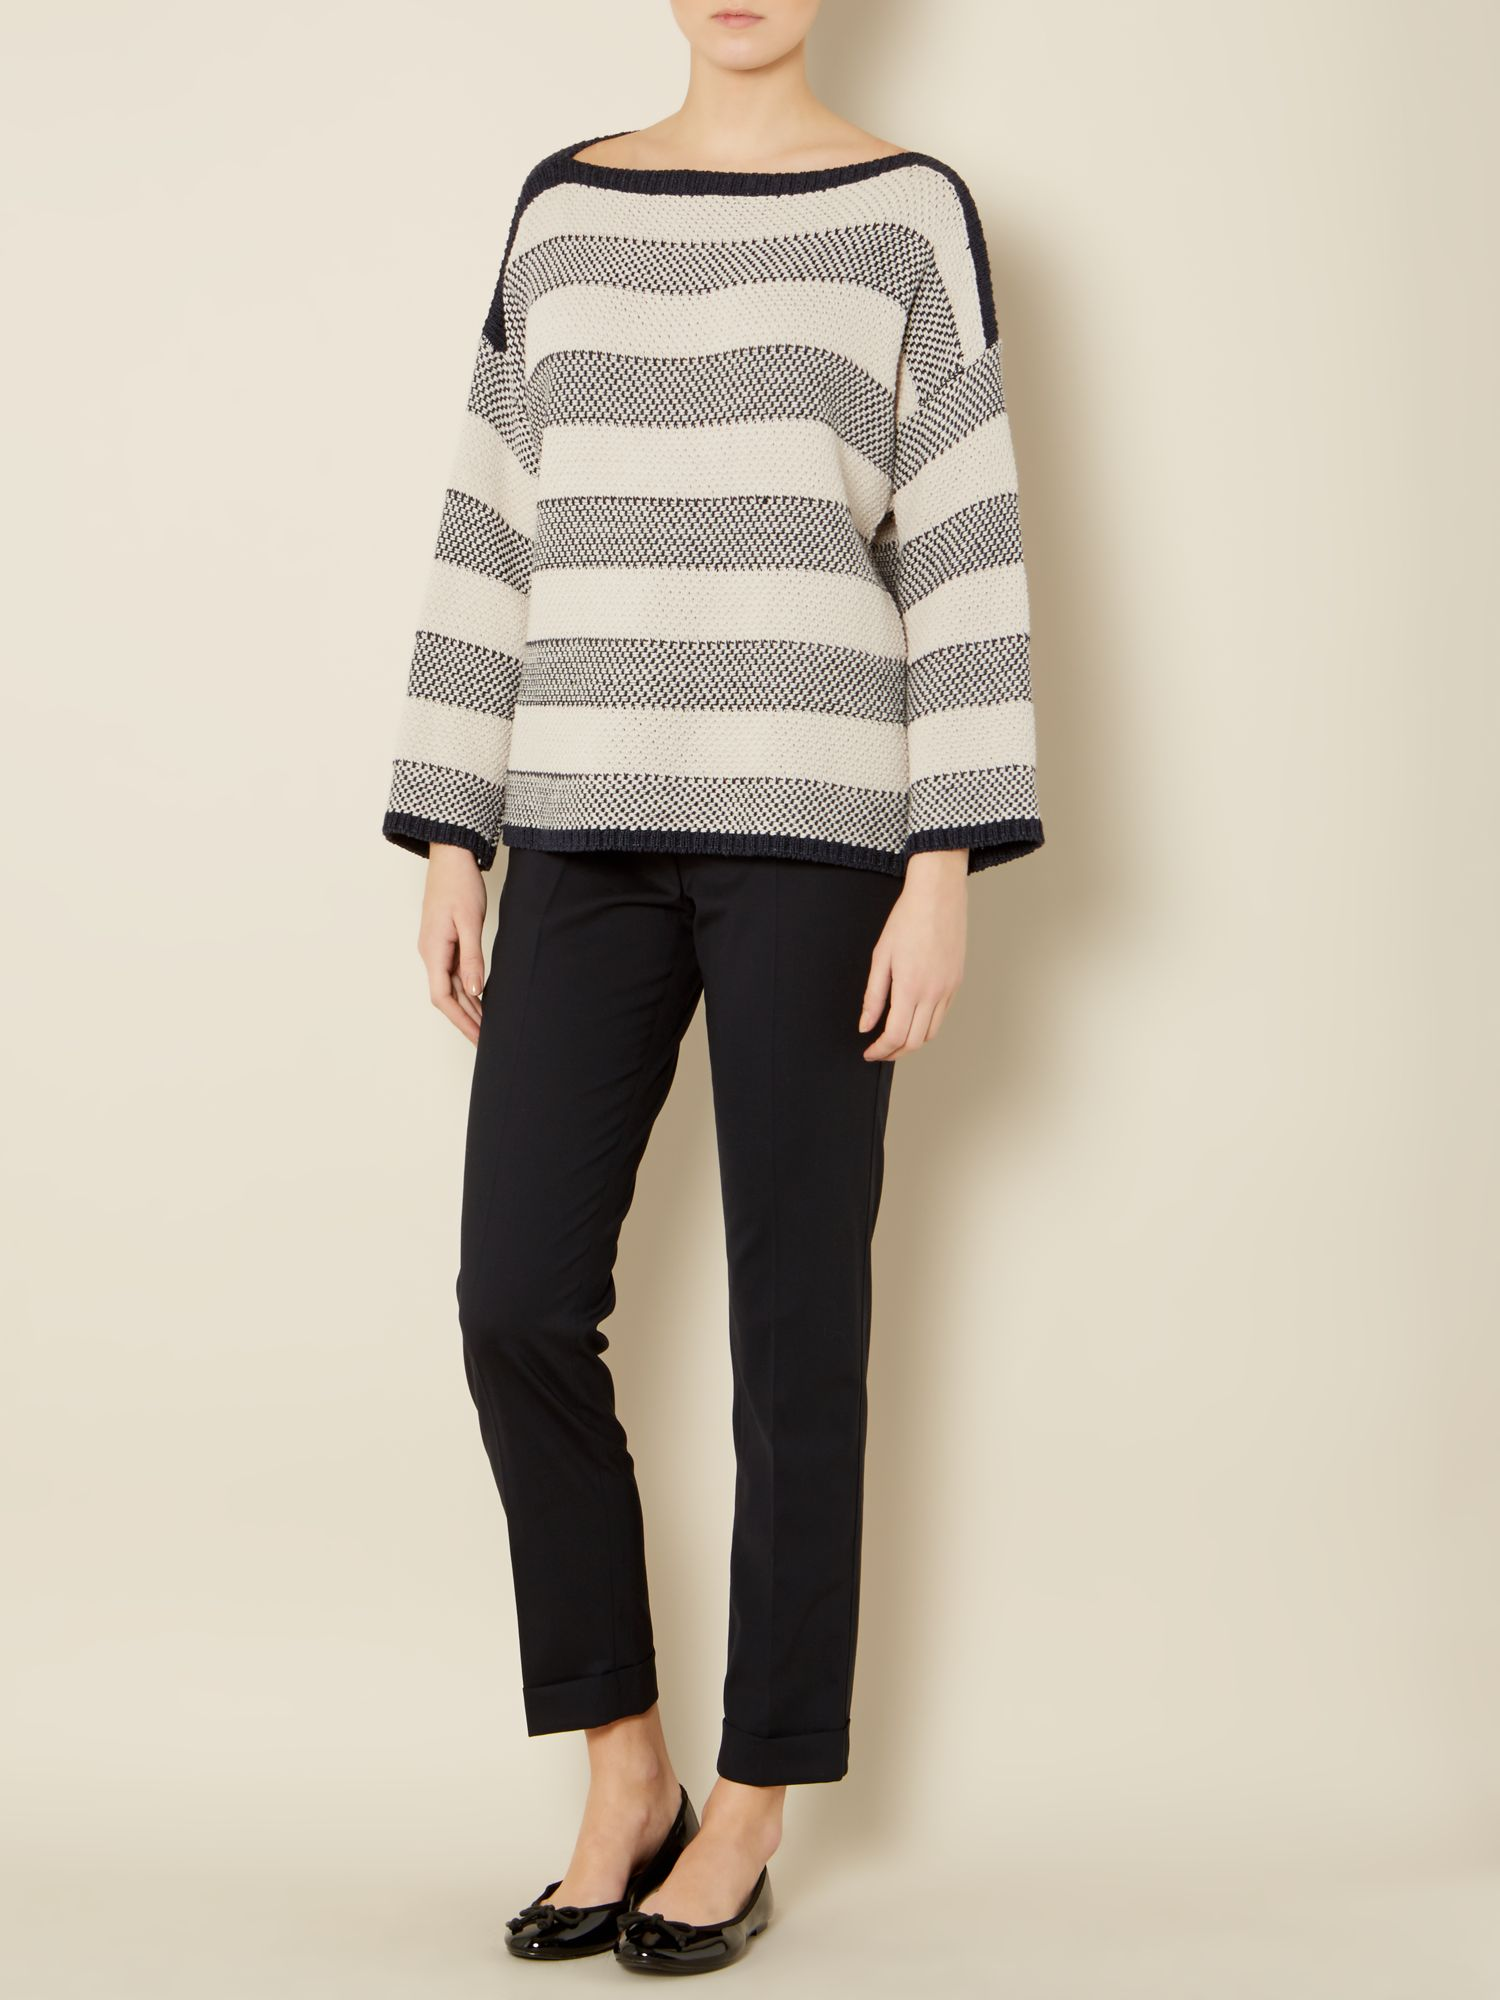 Empoli knitted oversized striped jumper